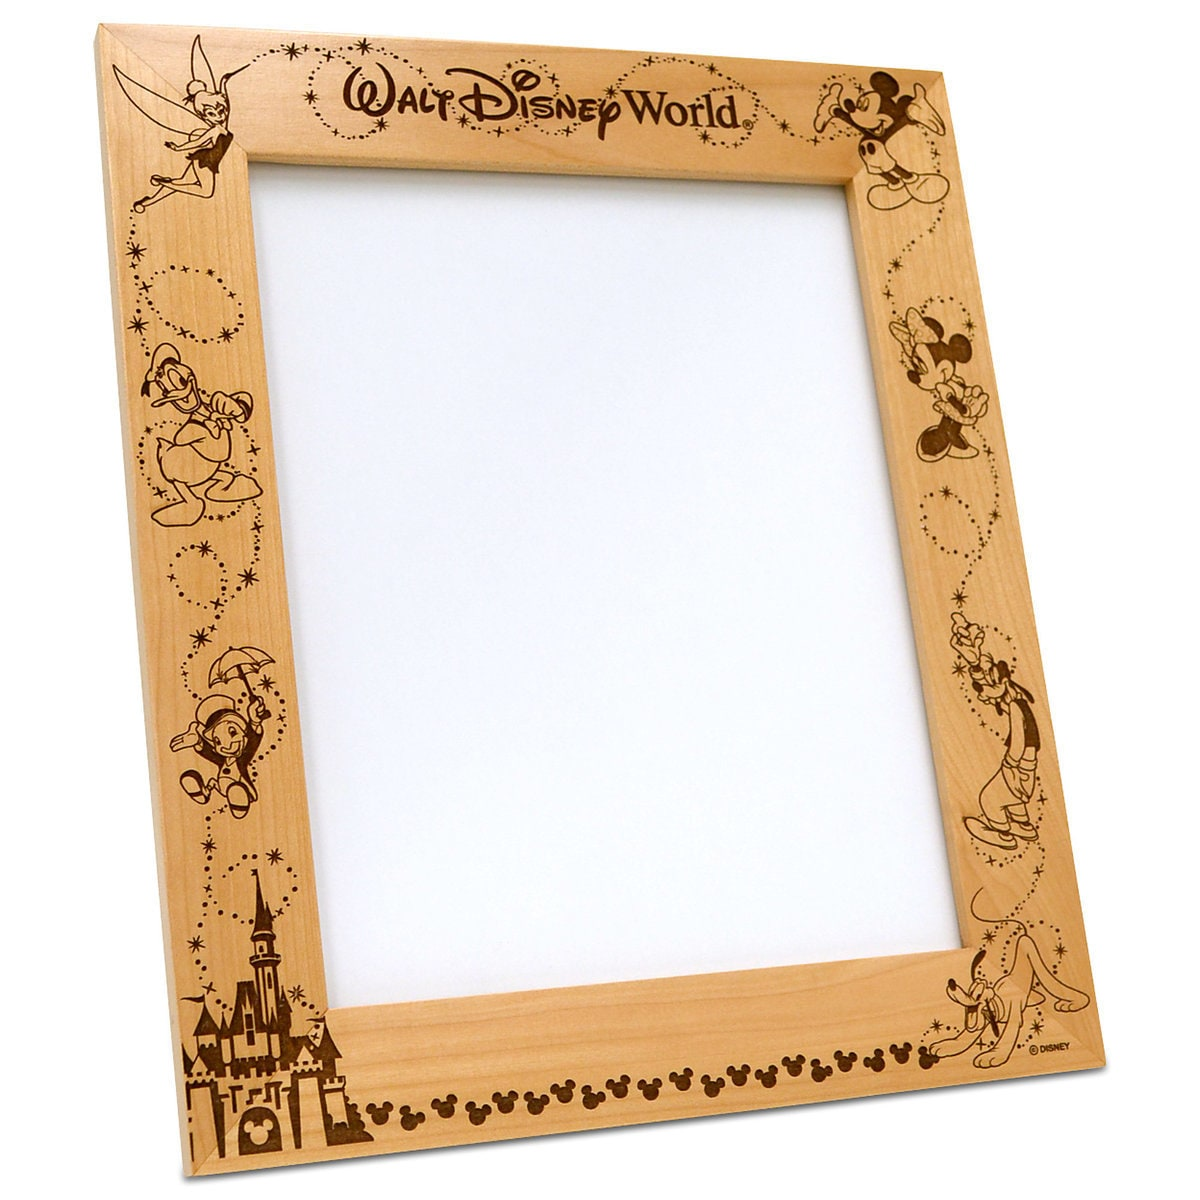 walt disney world frame by arribas personalizable - Disney Picture Frames